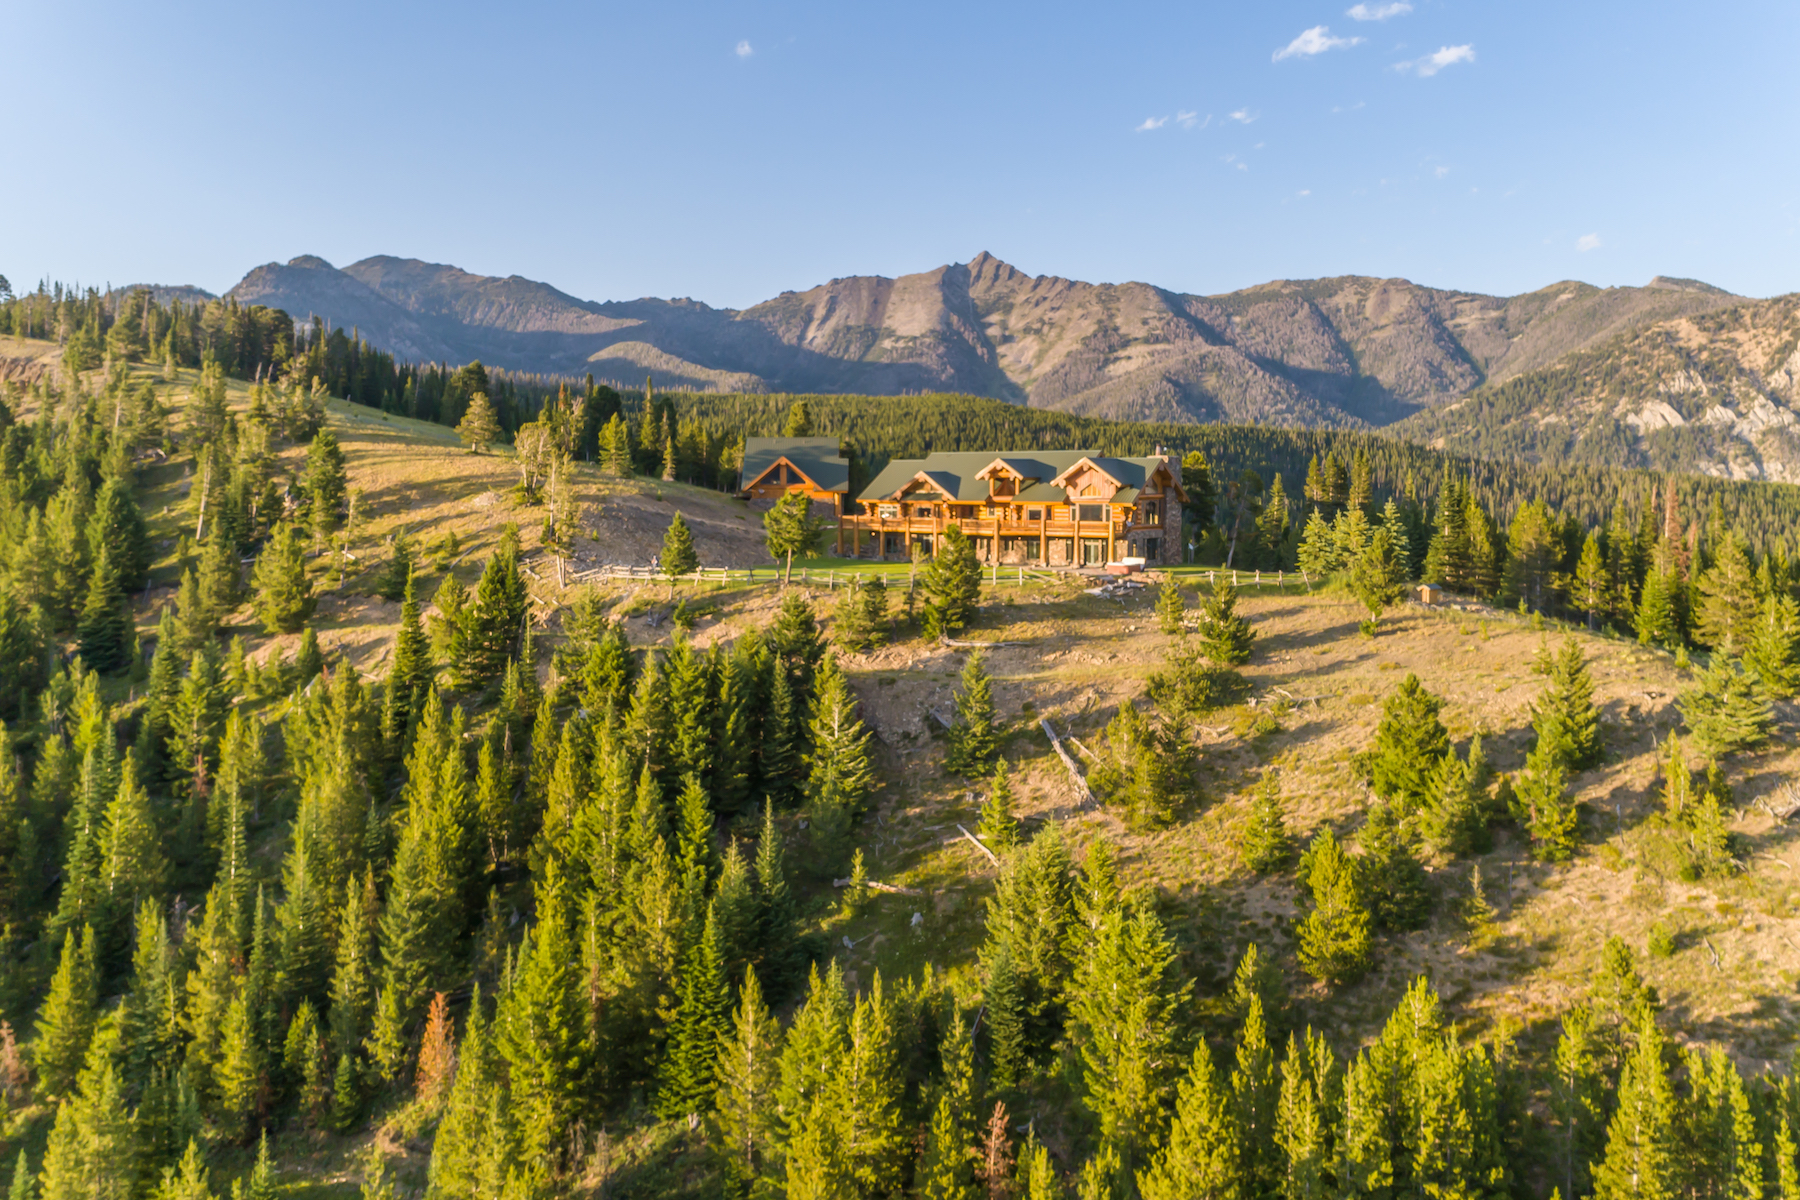 Single Family Homes for Sale at Montana De Paz 1320 Old Toby Road Big Sky, Montana 59716 United States